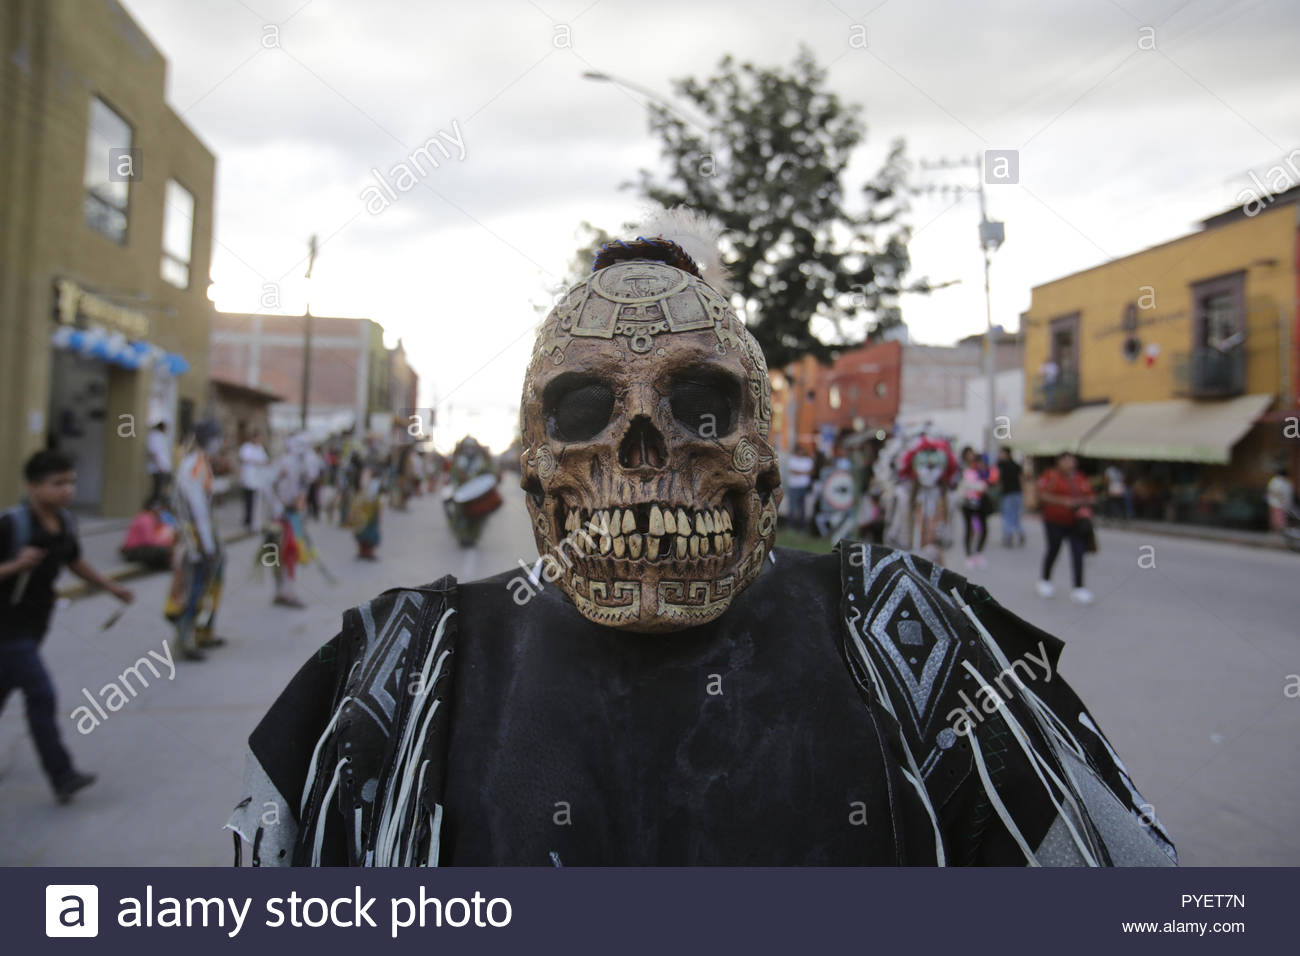 A dancer in a skull mask at an annual parade in mexico - Stock Image